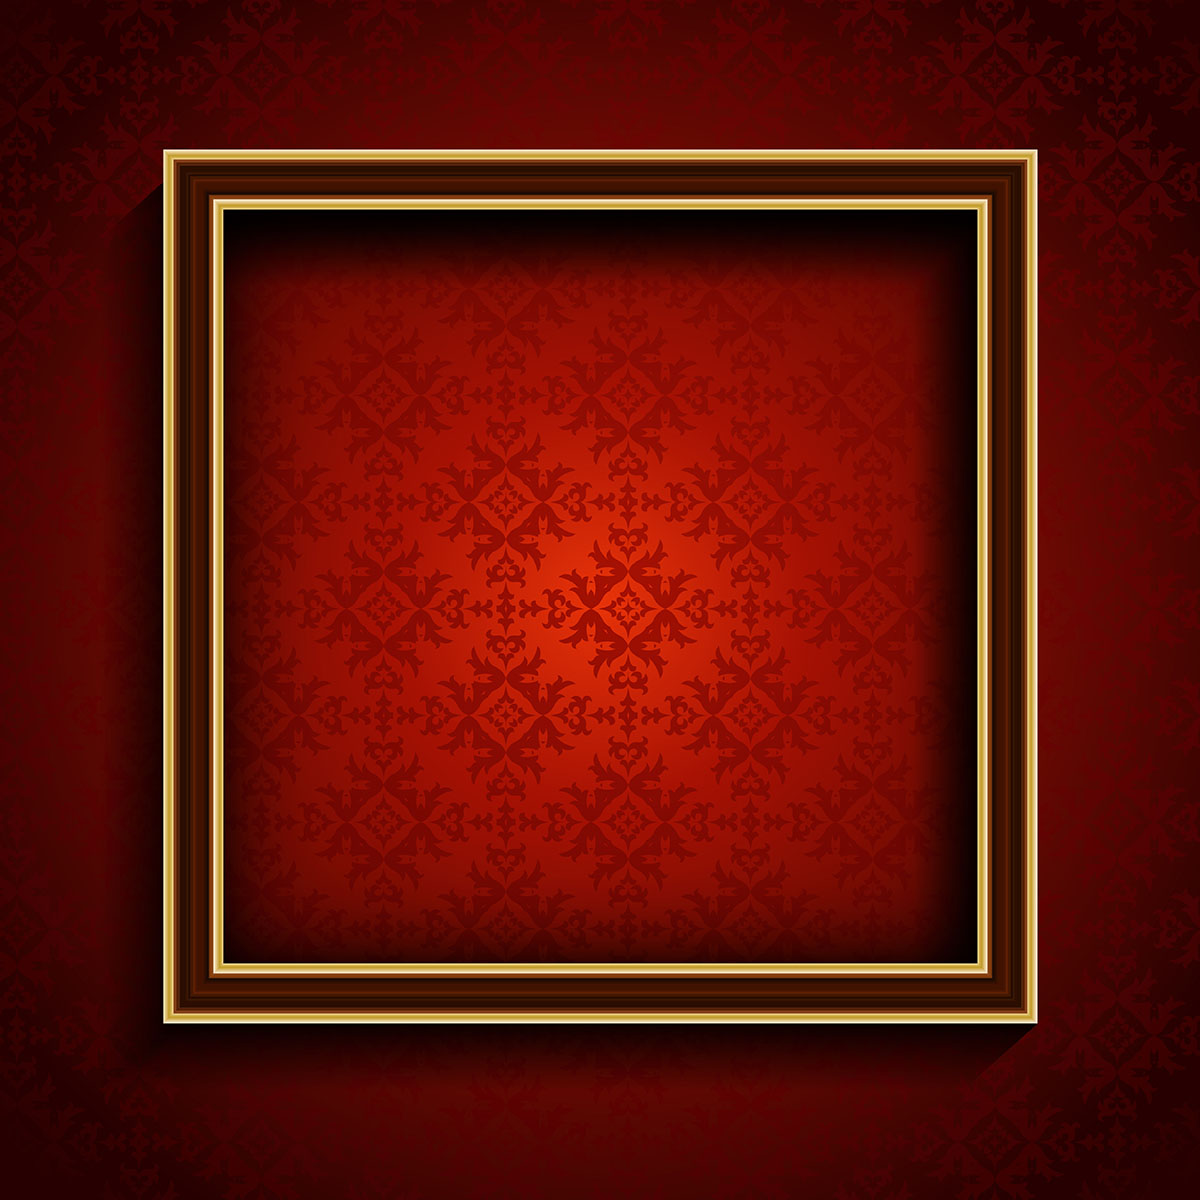 Old Picture Frame On Red Damask Background Download Free